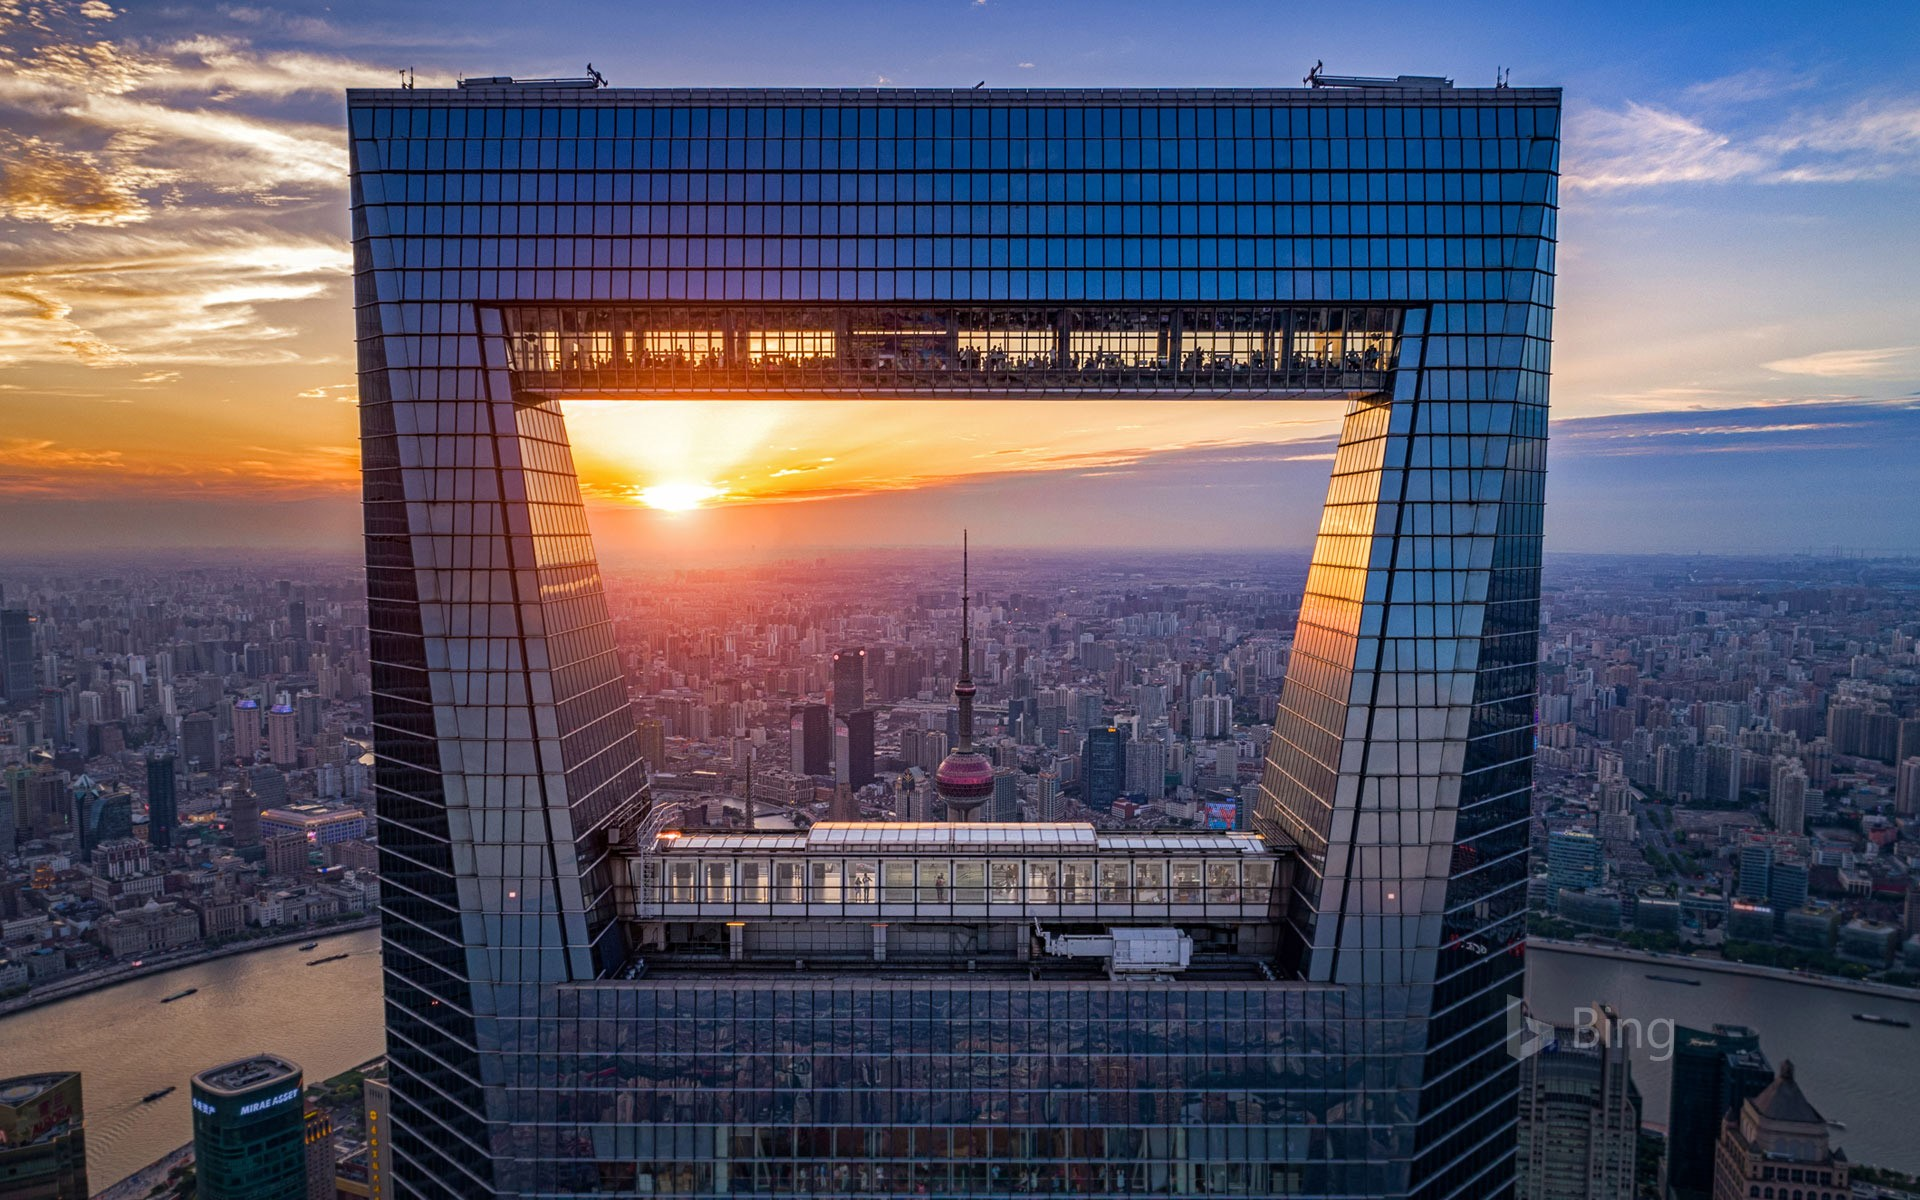 The Shanghai World Financial Center in China